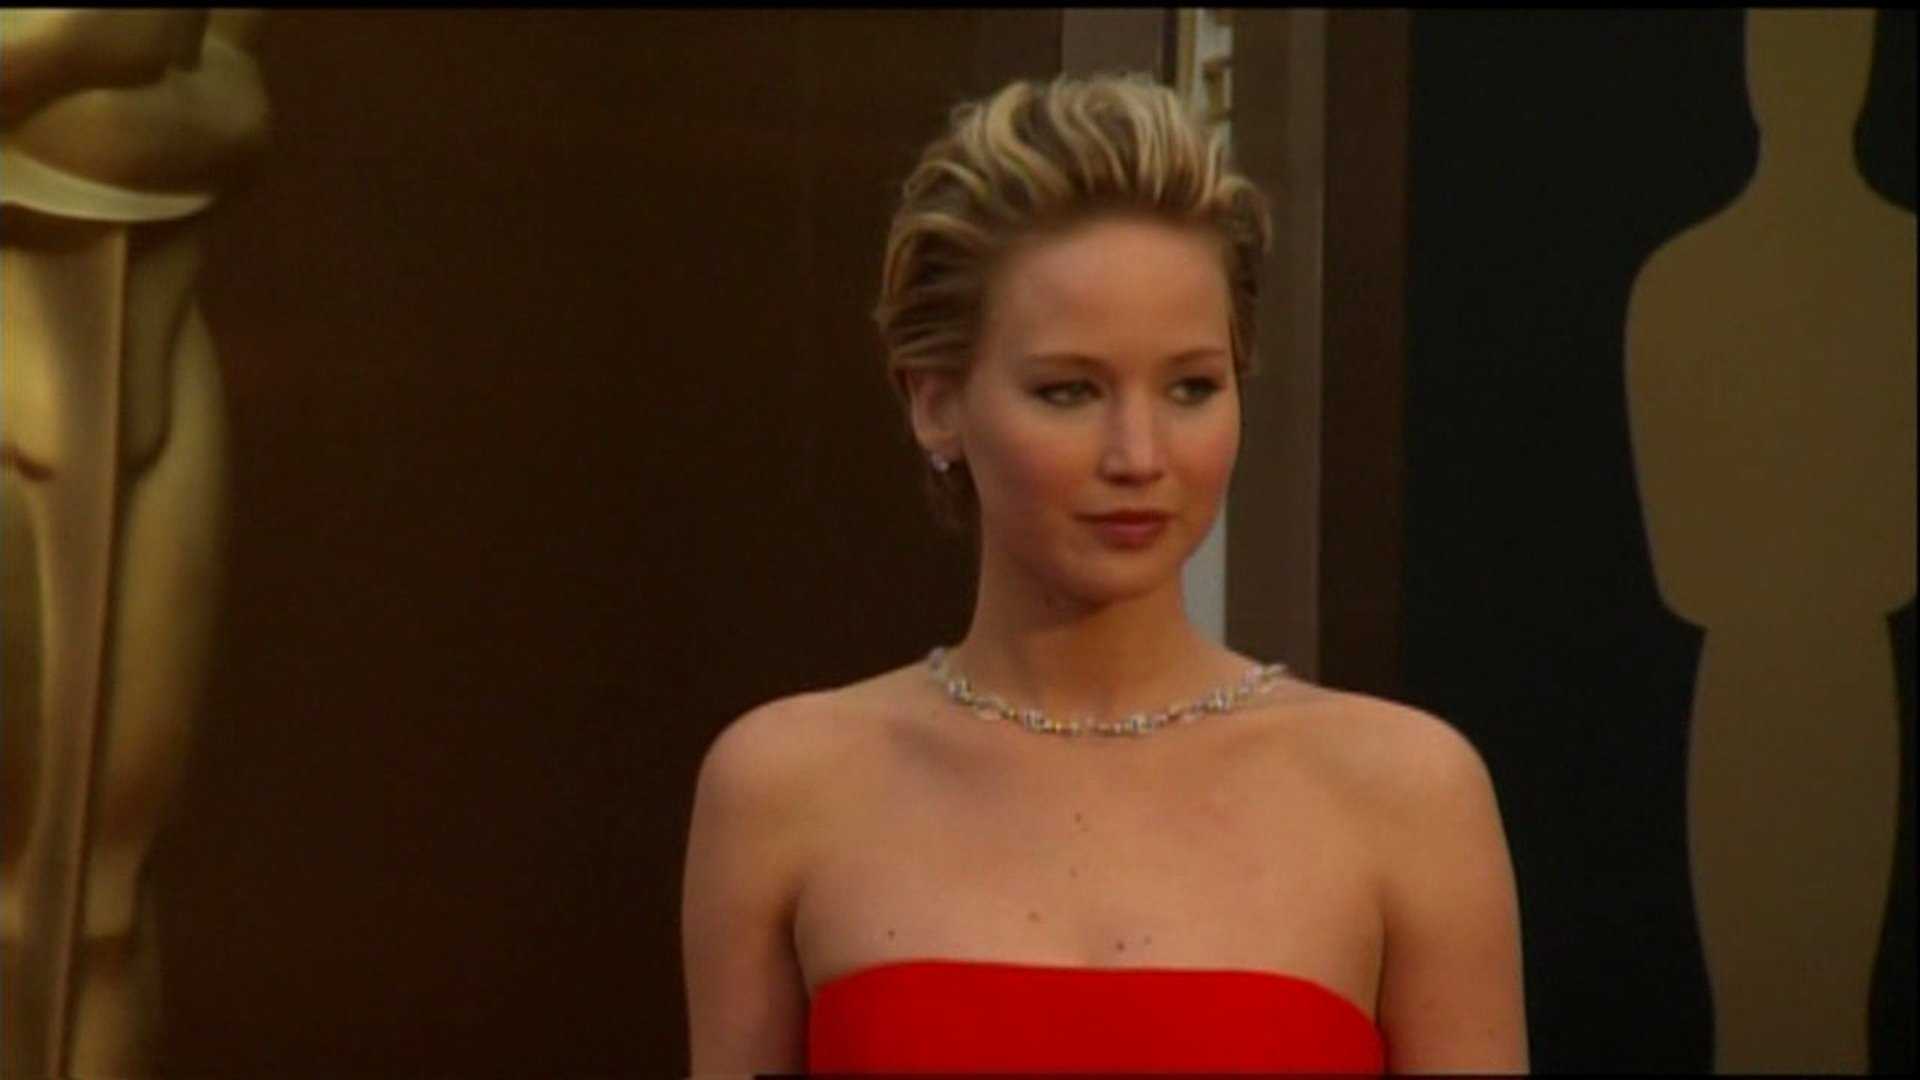 Lawrence nudes jennifer all How did